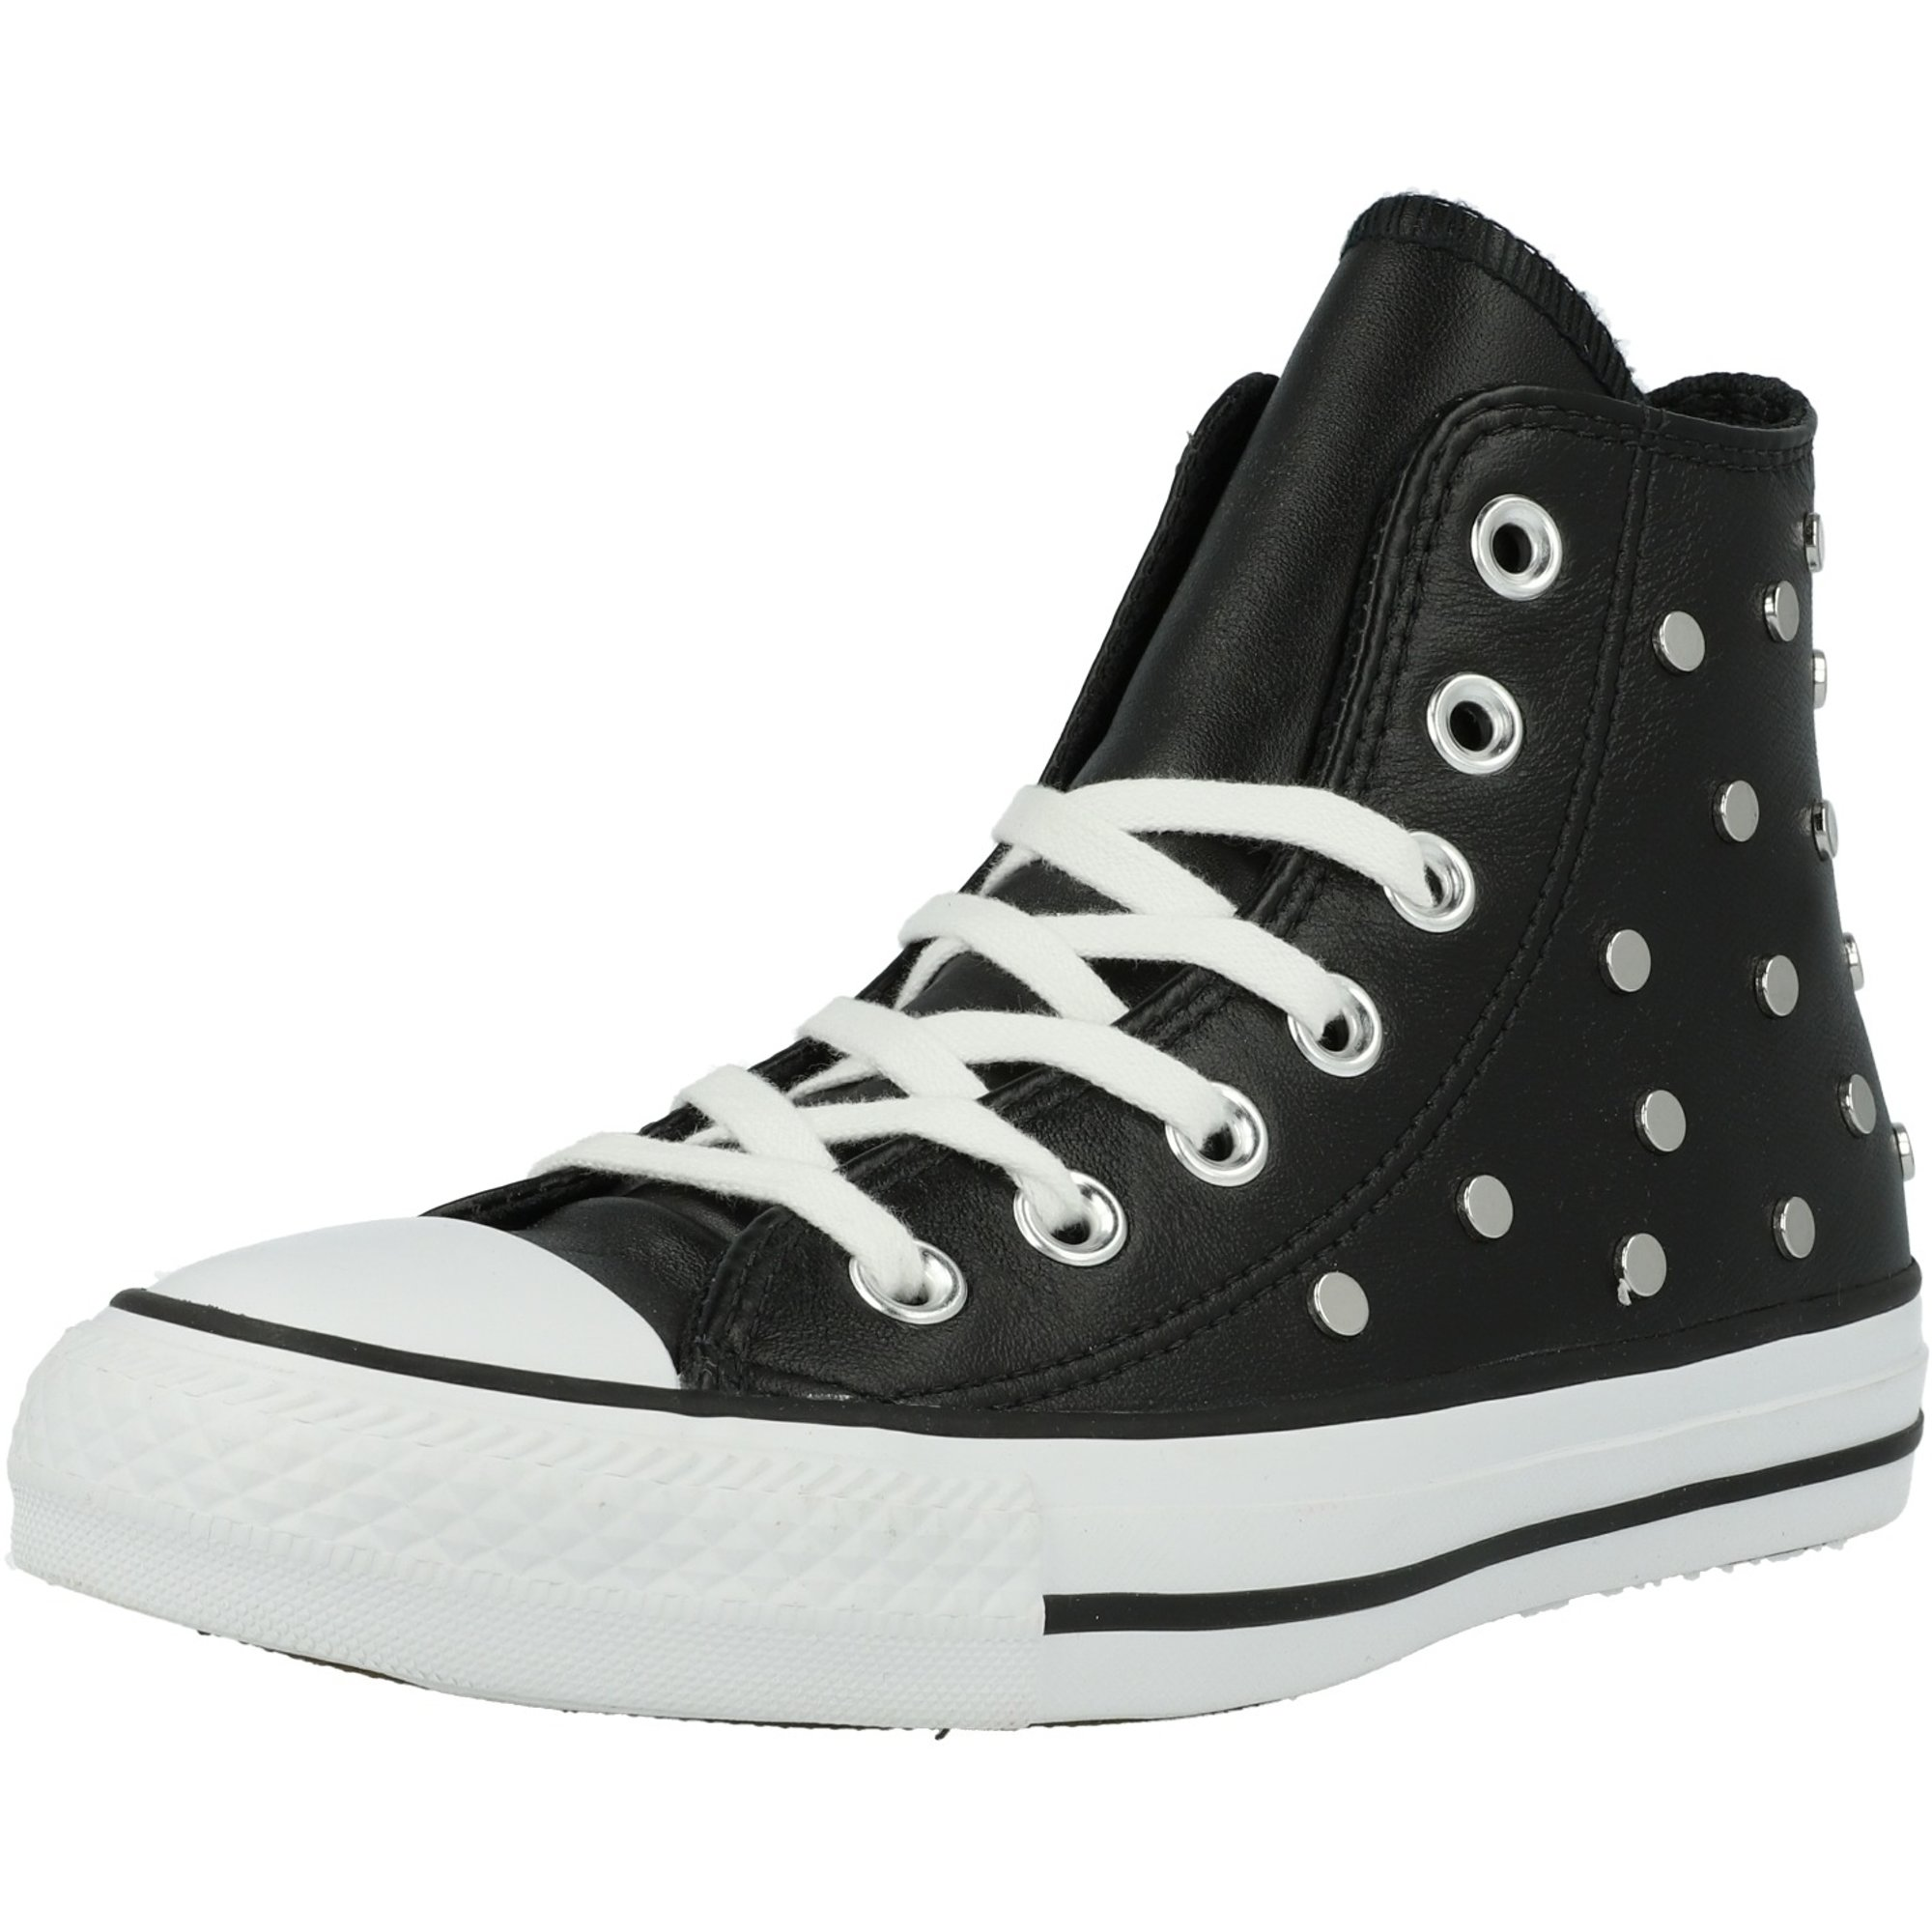 2converse all star hi pelle nero